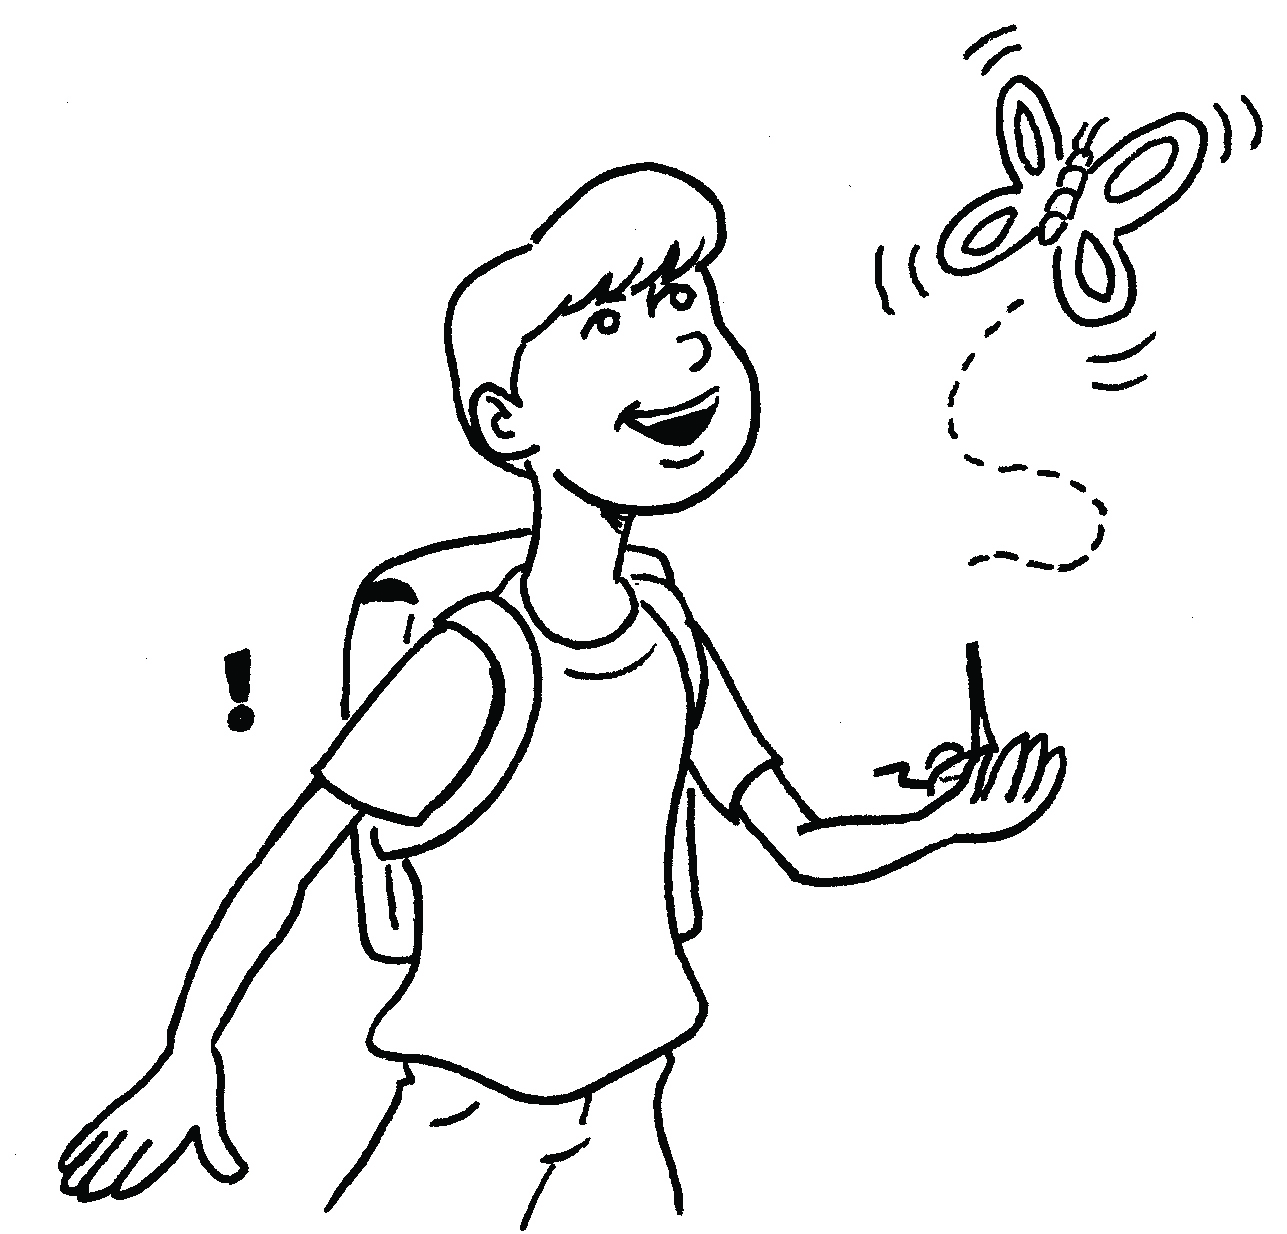 jimmy johnson coloring pages - photo#21